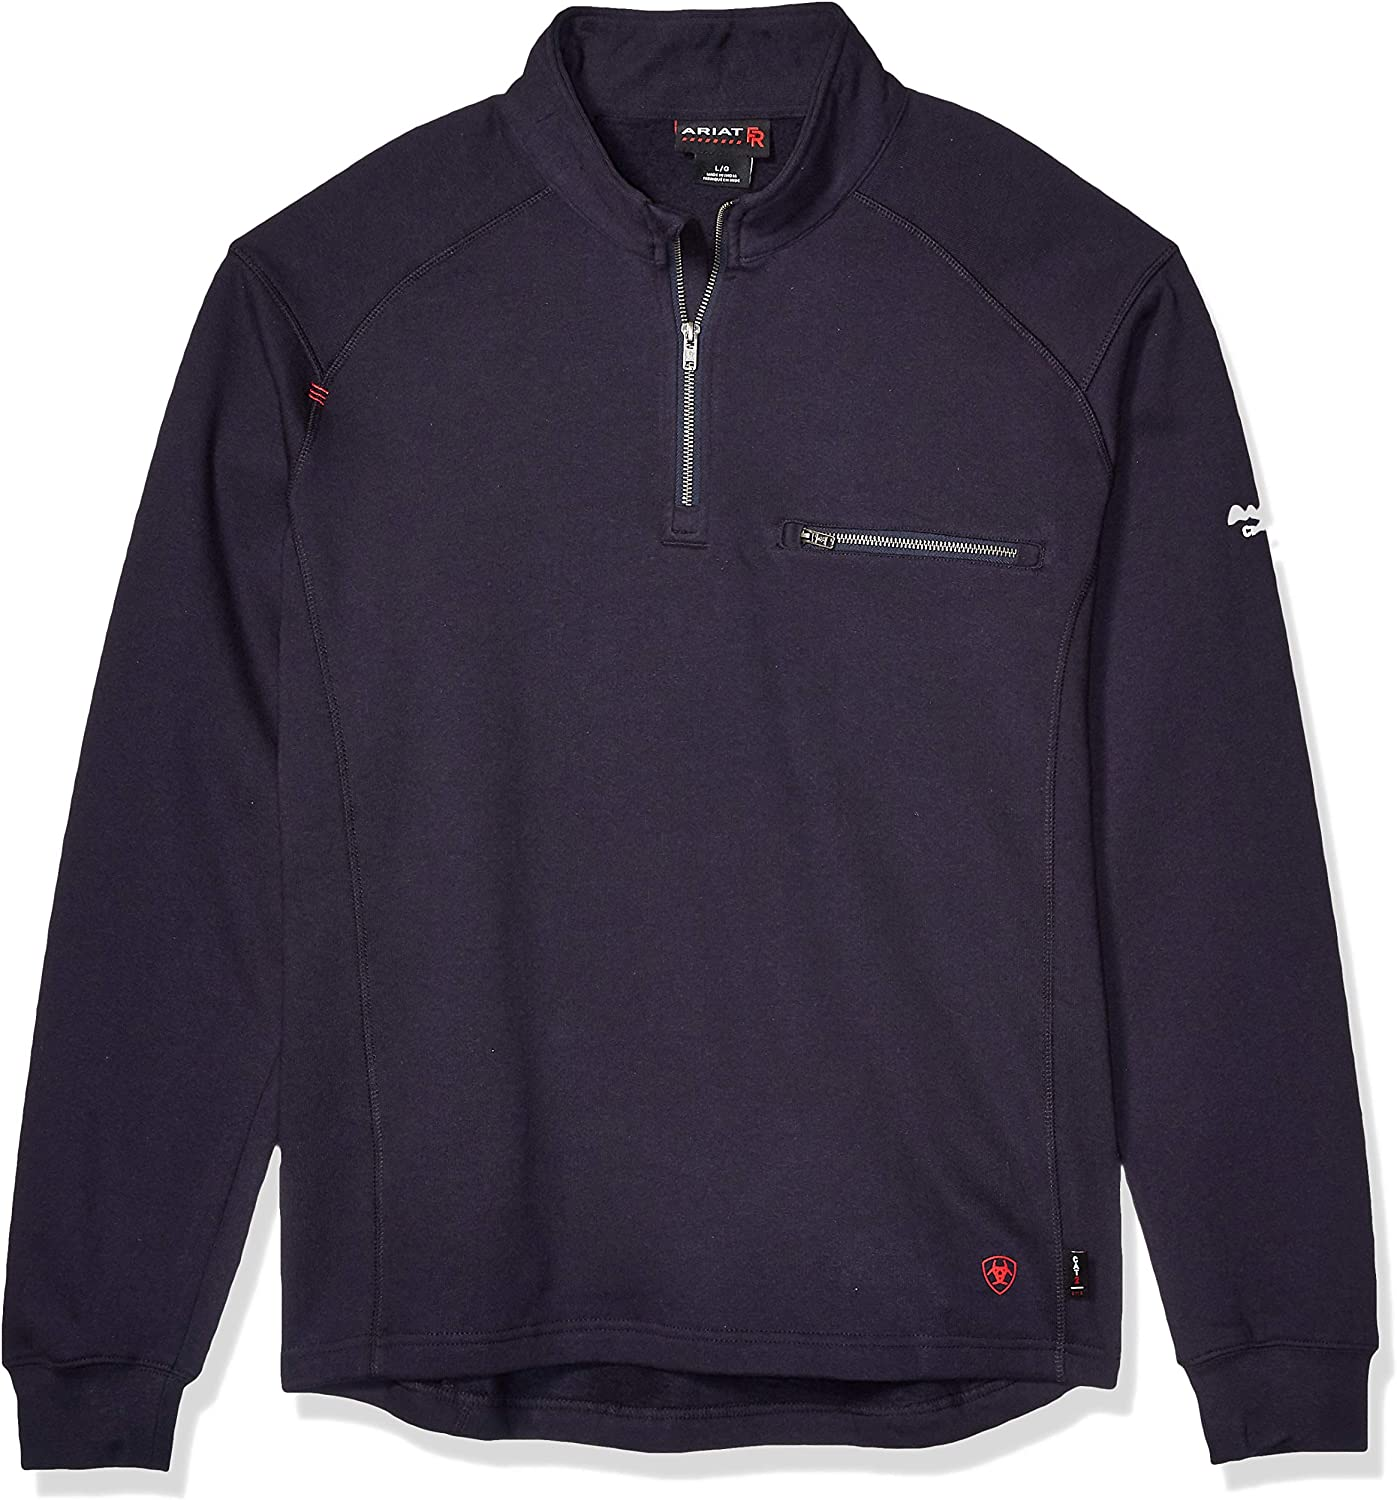 Ariat Men's Big and Tall Flame Resistant Rev 1/4 ZipShirt: Clothing